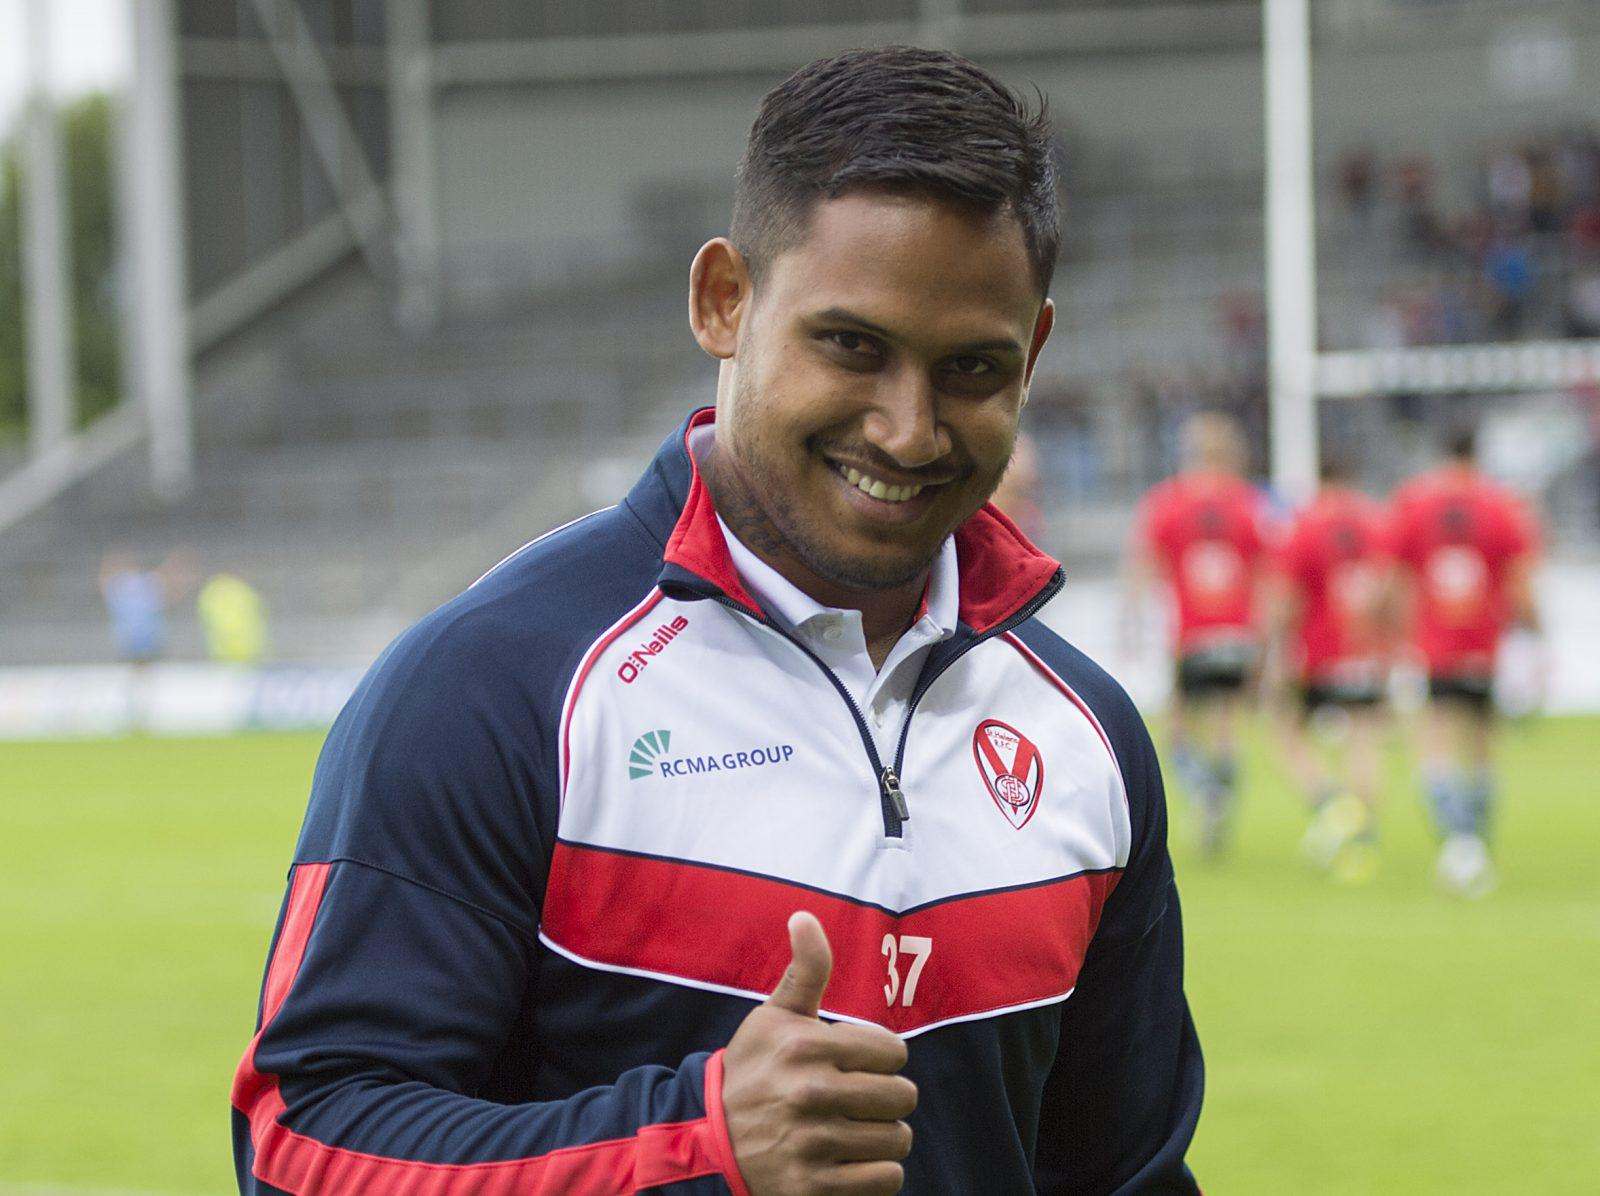 St Helens star Ben Barba has been cleared of serious injury after being stretchered off at Salford